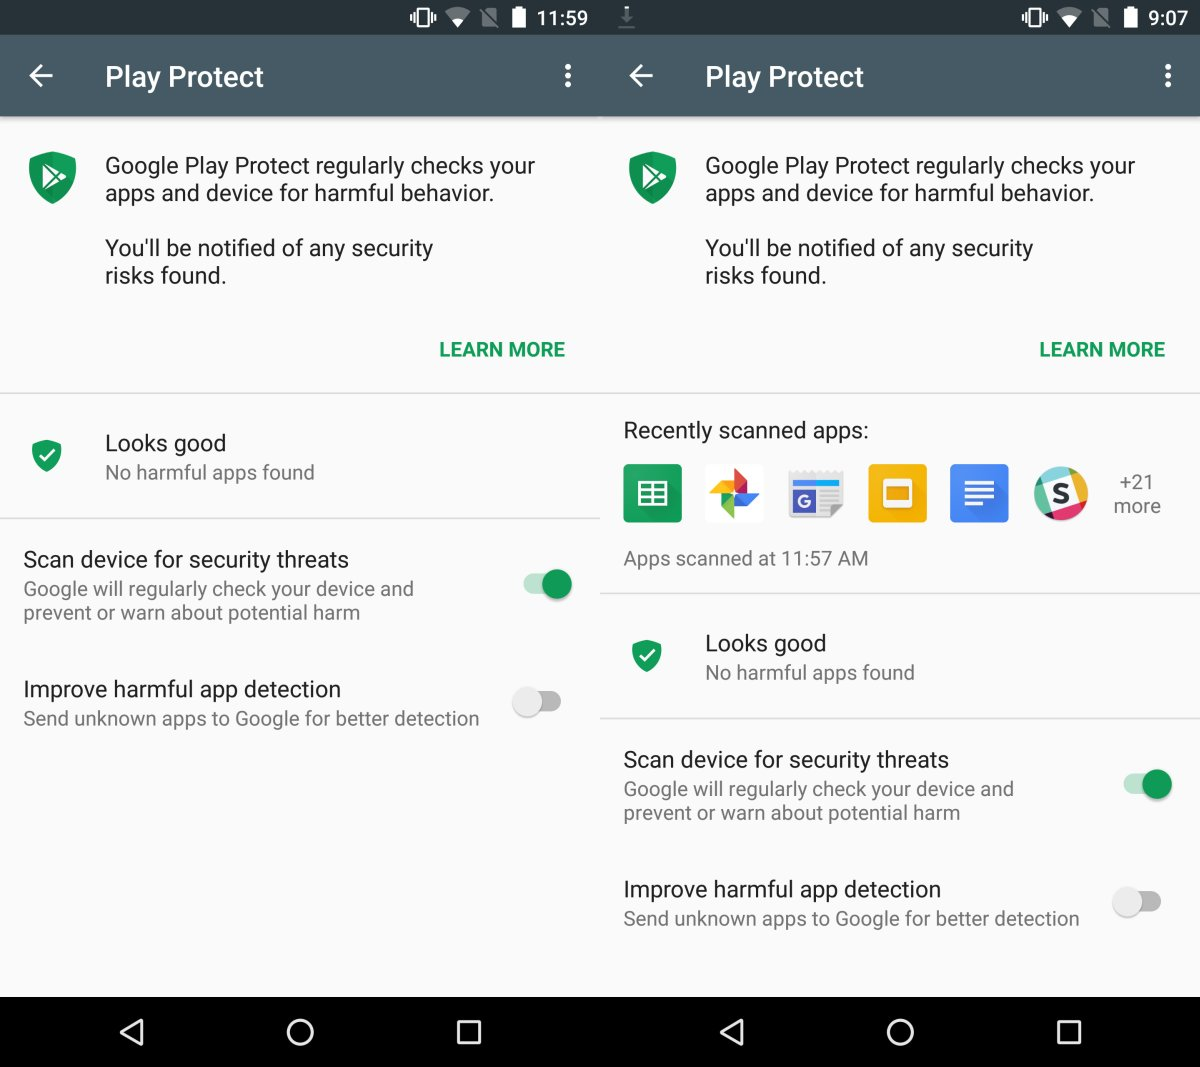 google play protect scan